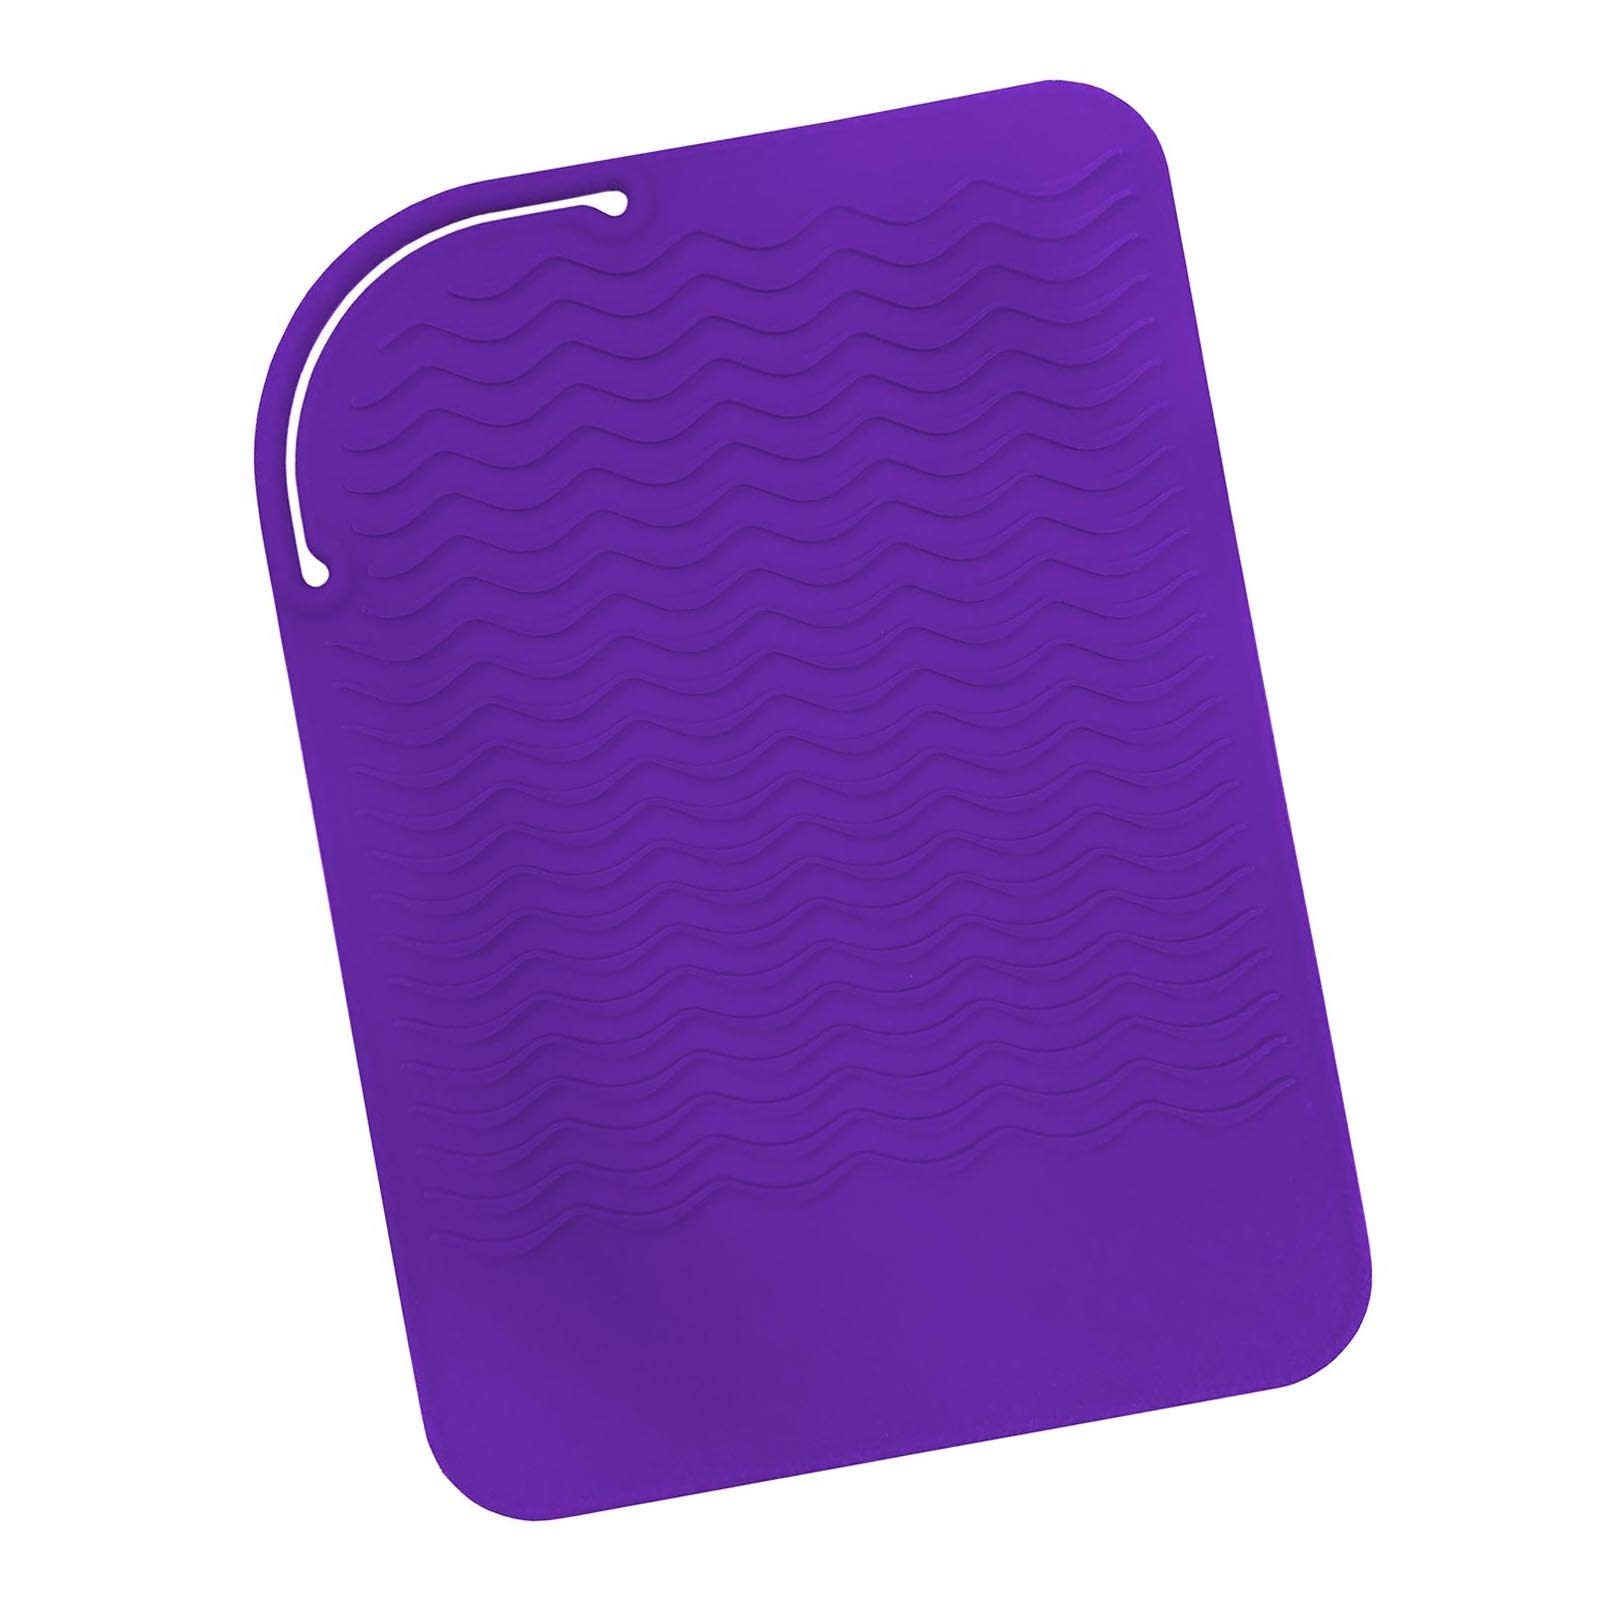 "Sygile 11"" X 7.5"" Larger Size Heat Resistant Silicone Travel Mat, Anti-heat Pad for Hair Straighteners, Curling Irons, Flat Irons and Other Hot Styling Tools - Purple"